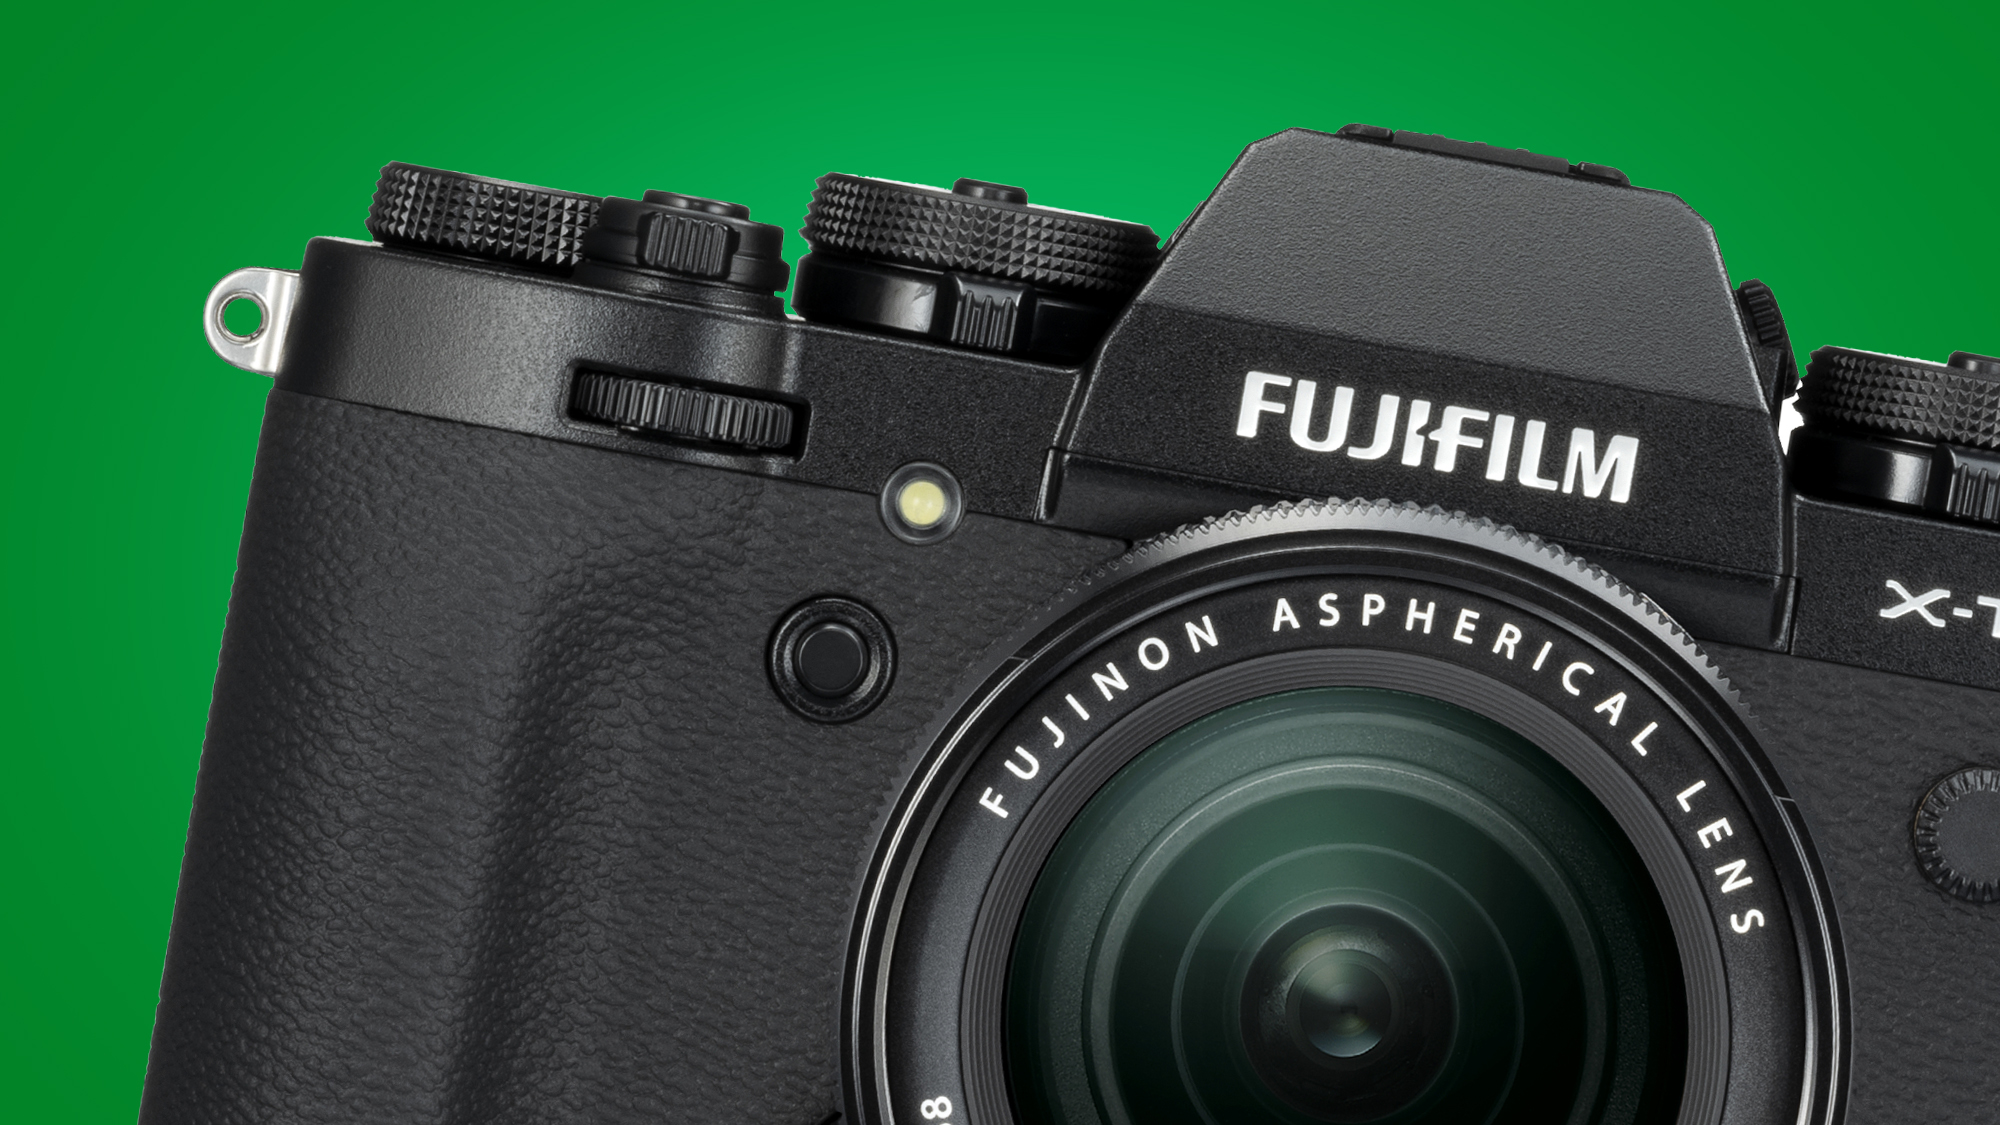 Fujifilm X-T4 could have a divisive new screen, rumors suggest